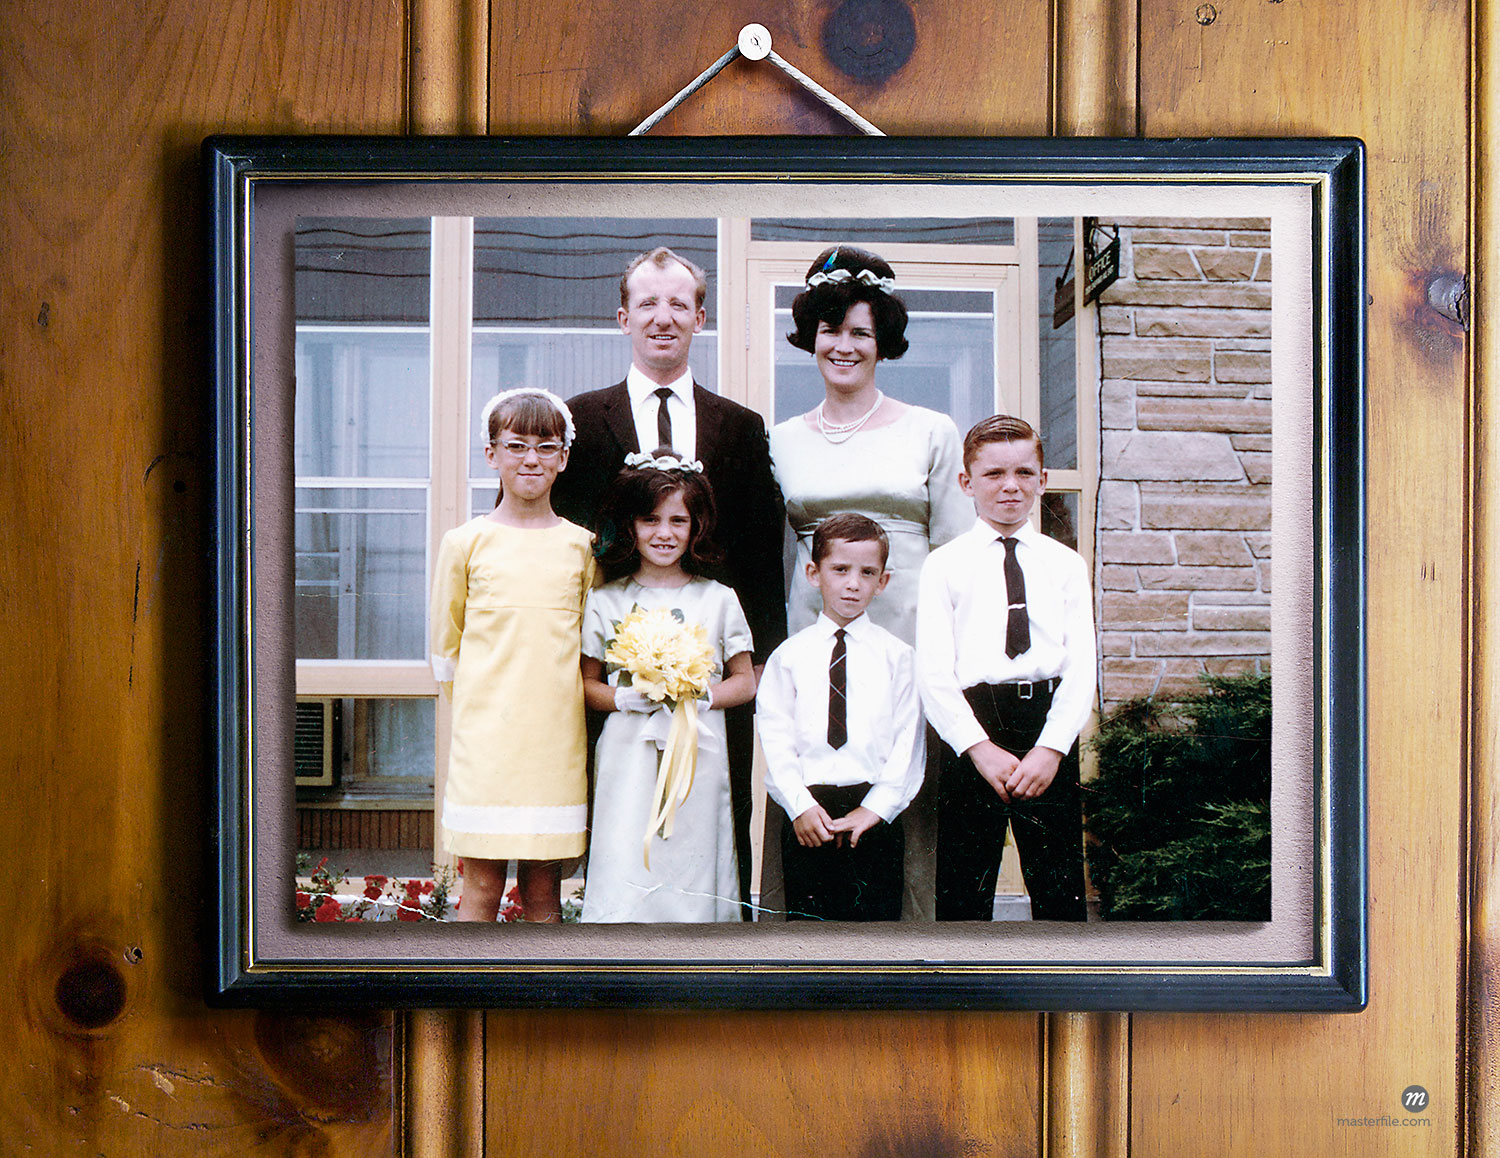 Vintage family portrait hanging on wall  @ Andrew Kolb / Masterfile